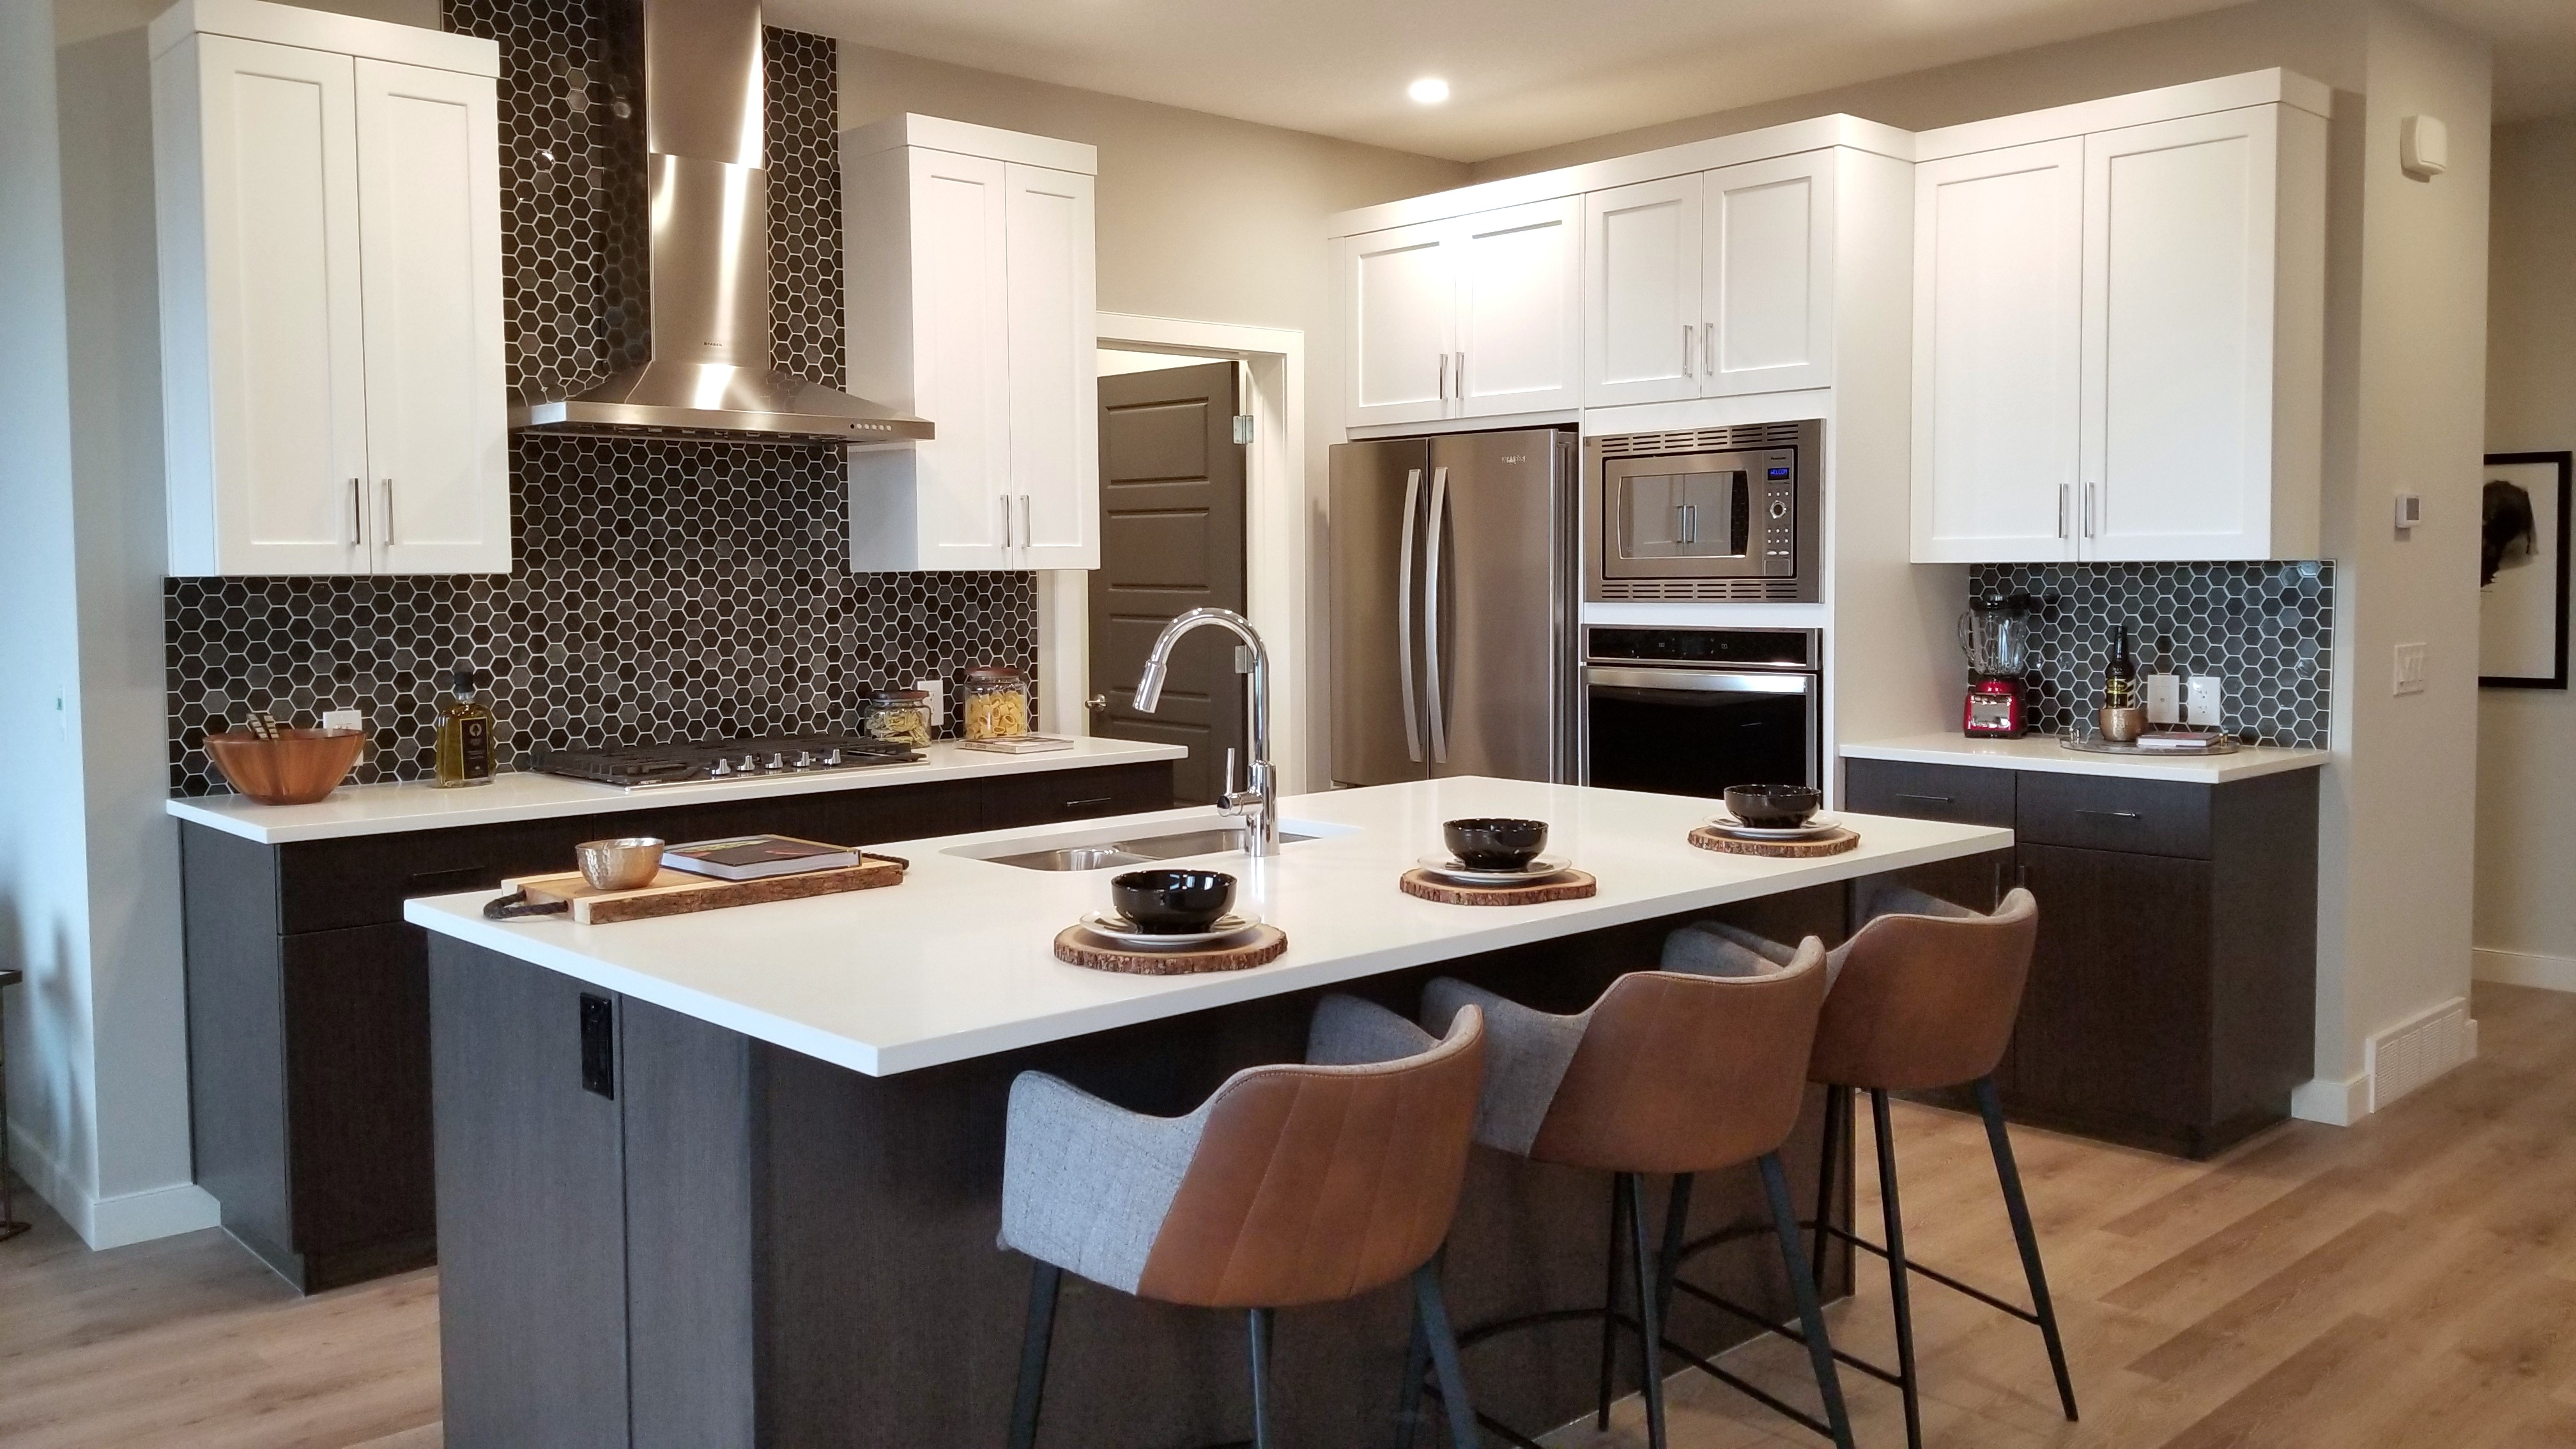 Our Ruby showhome shines in Cornerstone's newest phase